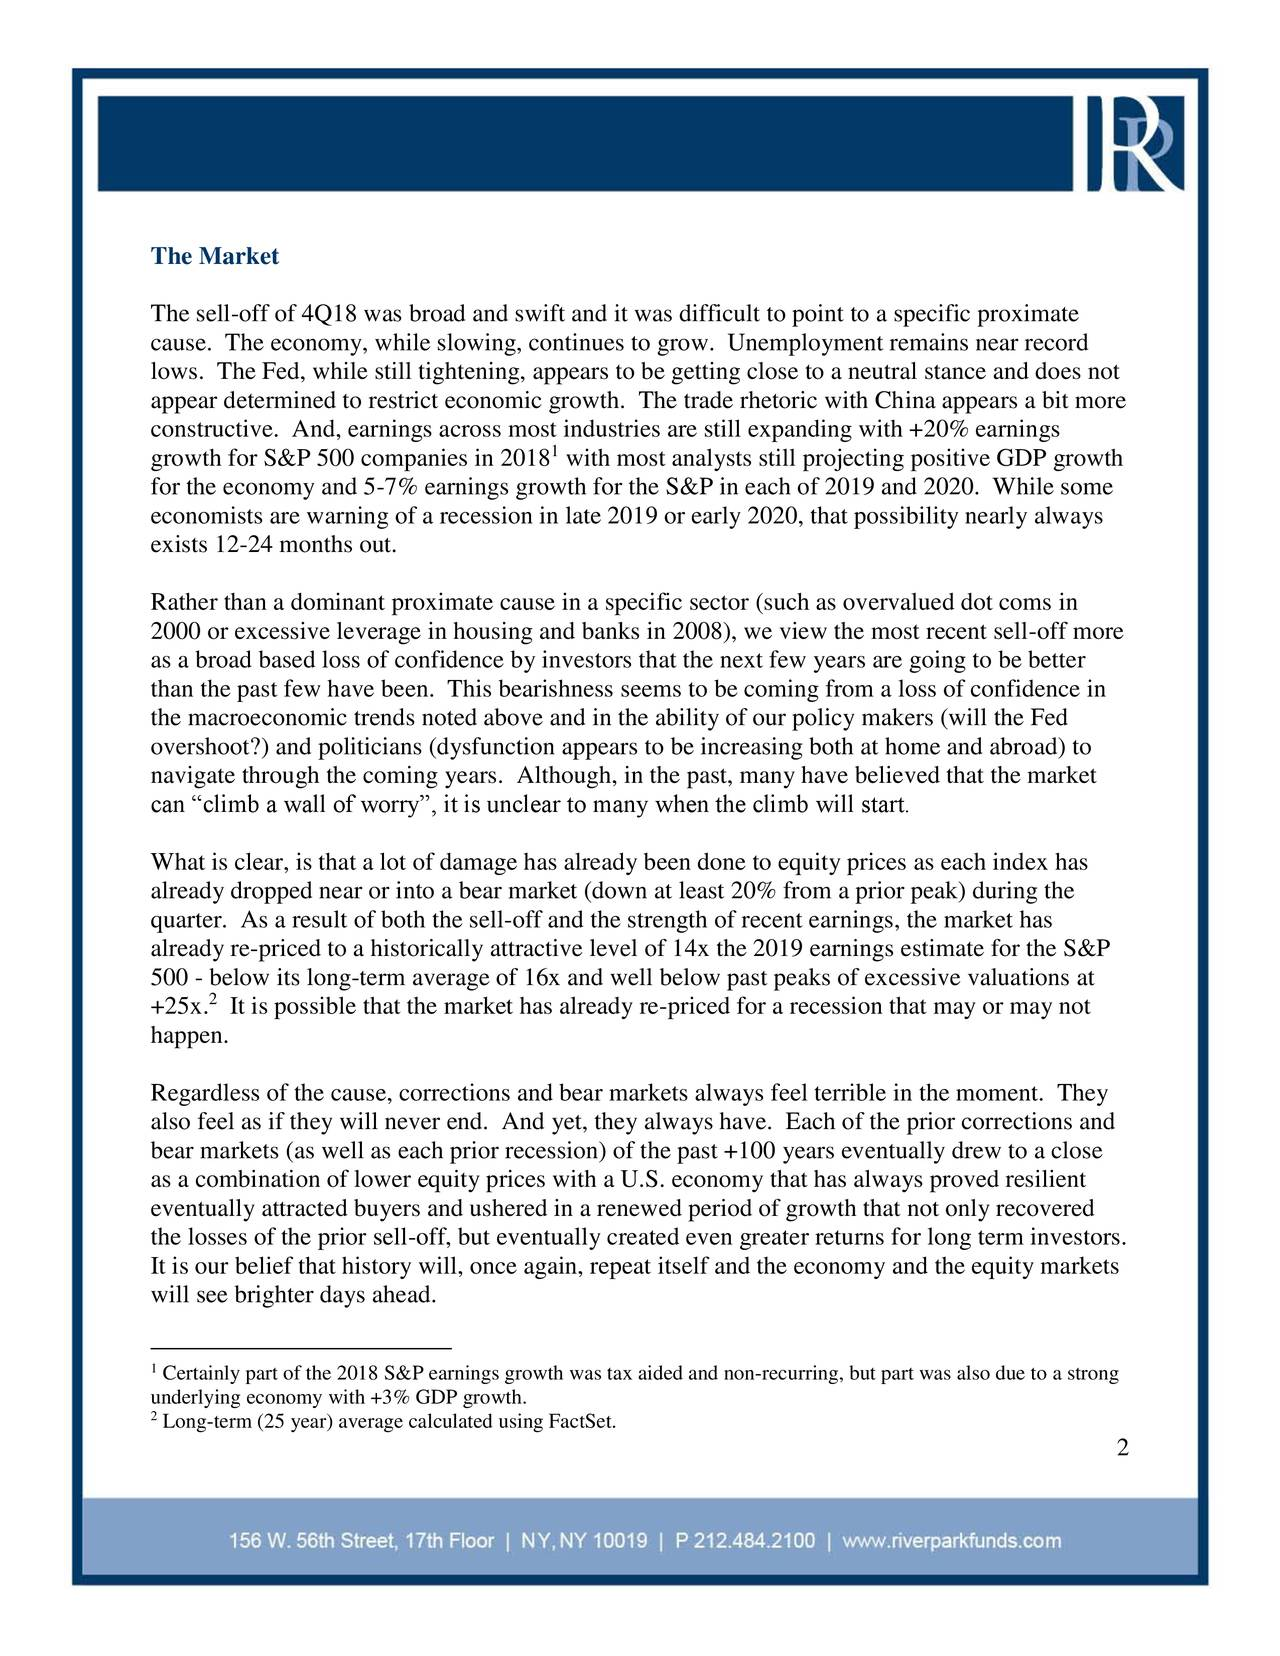 """The sell-off of 4Q18 was broad and swift and it was difficult to point to a specific proximate cause. The economy, while slowing, continues to grow. Unemployment remains near record lows. The Fed, while still tightening, appears to be getting close to a neutral stance and does not appear determined to restrict economic growth. The trade rhetoric with China appears a bit more constructive. And, earnings across most industries are still expanding with +20% earnings 1 growth for S&P 500 companies in 2018 with most analysts still projecting positive GDP growth for the economy and 5-7% earnings growth for the S&P in each of 2019 and 2020. While some economists are warning of a recession in late 2019 or early 2020, that possibility nearly always exists 12-24 months out. Rather than a dominant proximate cause in a specific sector (such as overvalued dot coms in 2000 or excessive leverage in housing and banks in 2008), we view the most recent sell-off more as a broad based loss of confidence by investors that the next few years are going to be better than the past few have been. This bearishness seems to be coming from a loss of confidence in the macroeconomic trends noted above and in the ability of our policy makers (will the Fed overshoot?) and politicians (dysfunction appears to be increasing both at home and abroad) to navigate through the coming years. Although, in the past, many have believed that the market can """"climb a wall of worry"""", it is unclear to many when the climb will start. What is clear, is that a lot of damage has already been done to equity prices as each index has already dropped near or into a bear market (down at least 20% from a prior peak) during the quarter. As a result of both the sell-off and the strength of recent earnings, the market has already re-priced to a historically attractive level of 14x the 2019 earnings estimate for the S&P 500 - 2elow its long-term average of 16x and well below past peaks of excessive valuations at +25x. It is poss"""